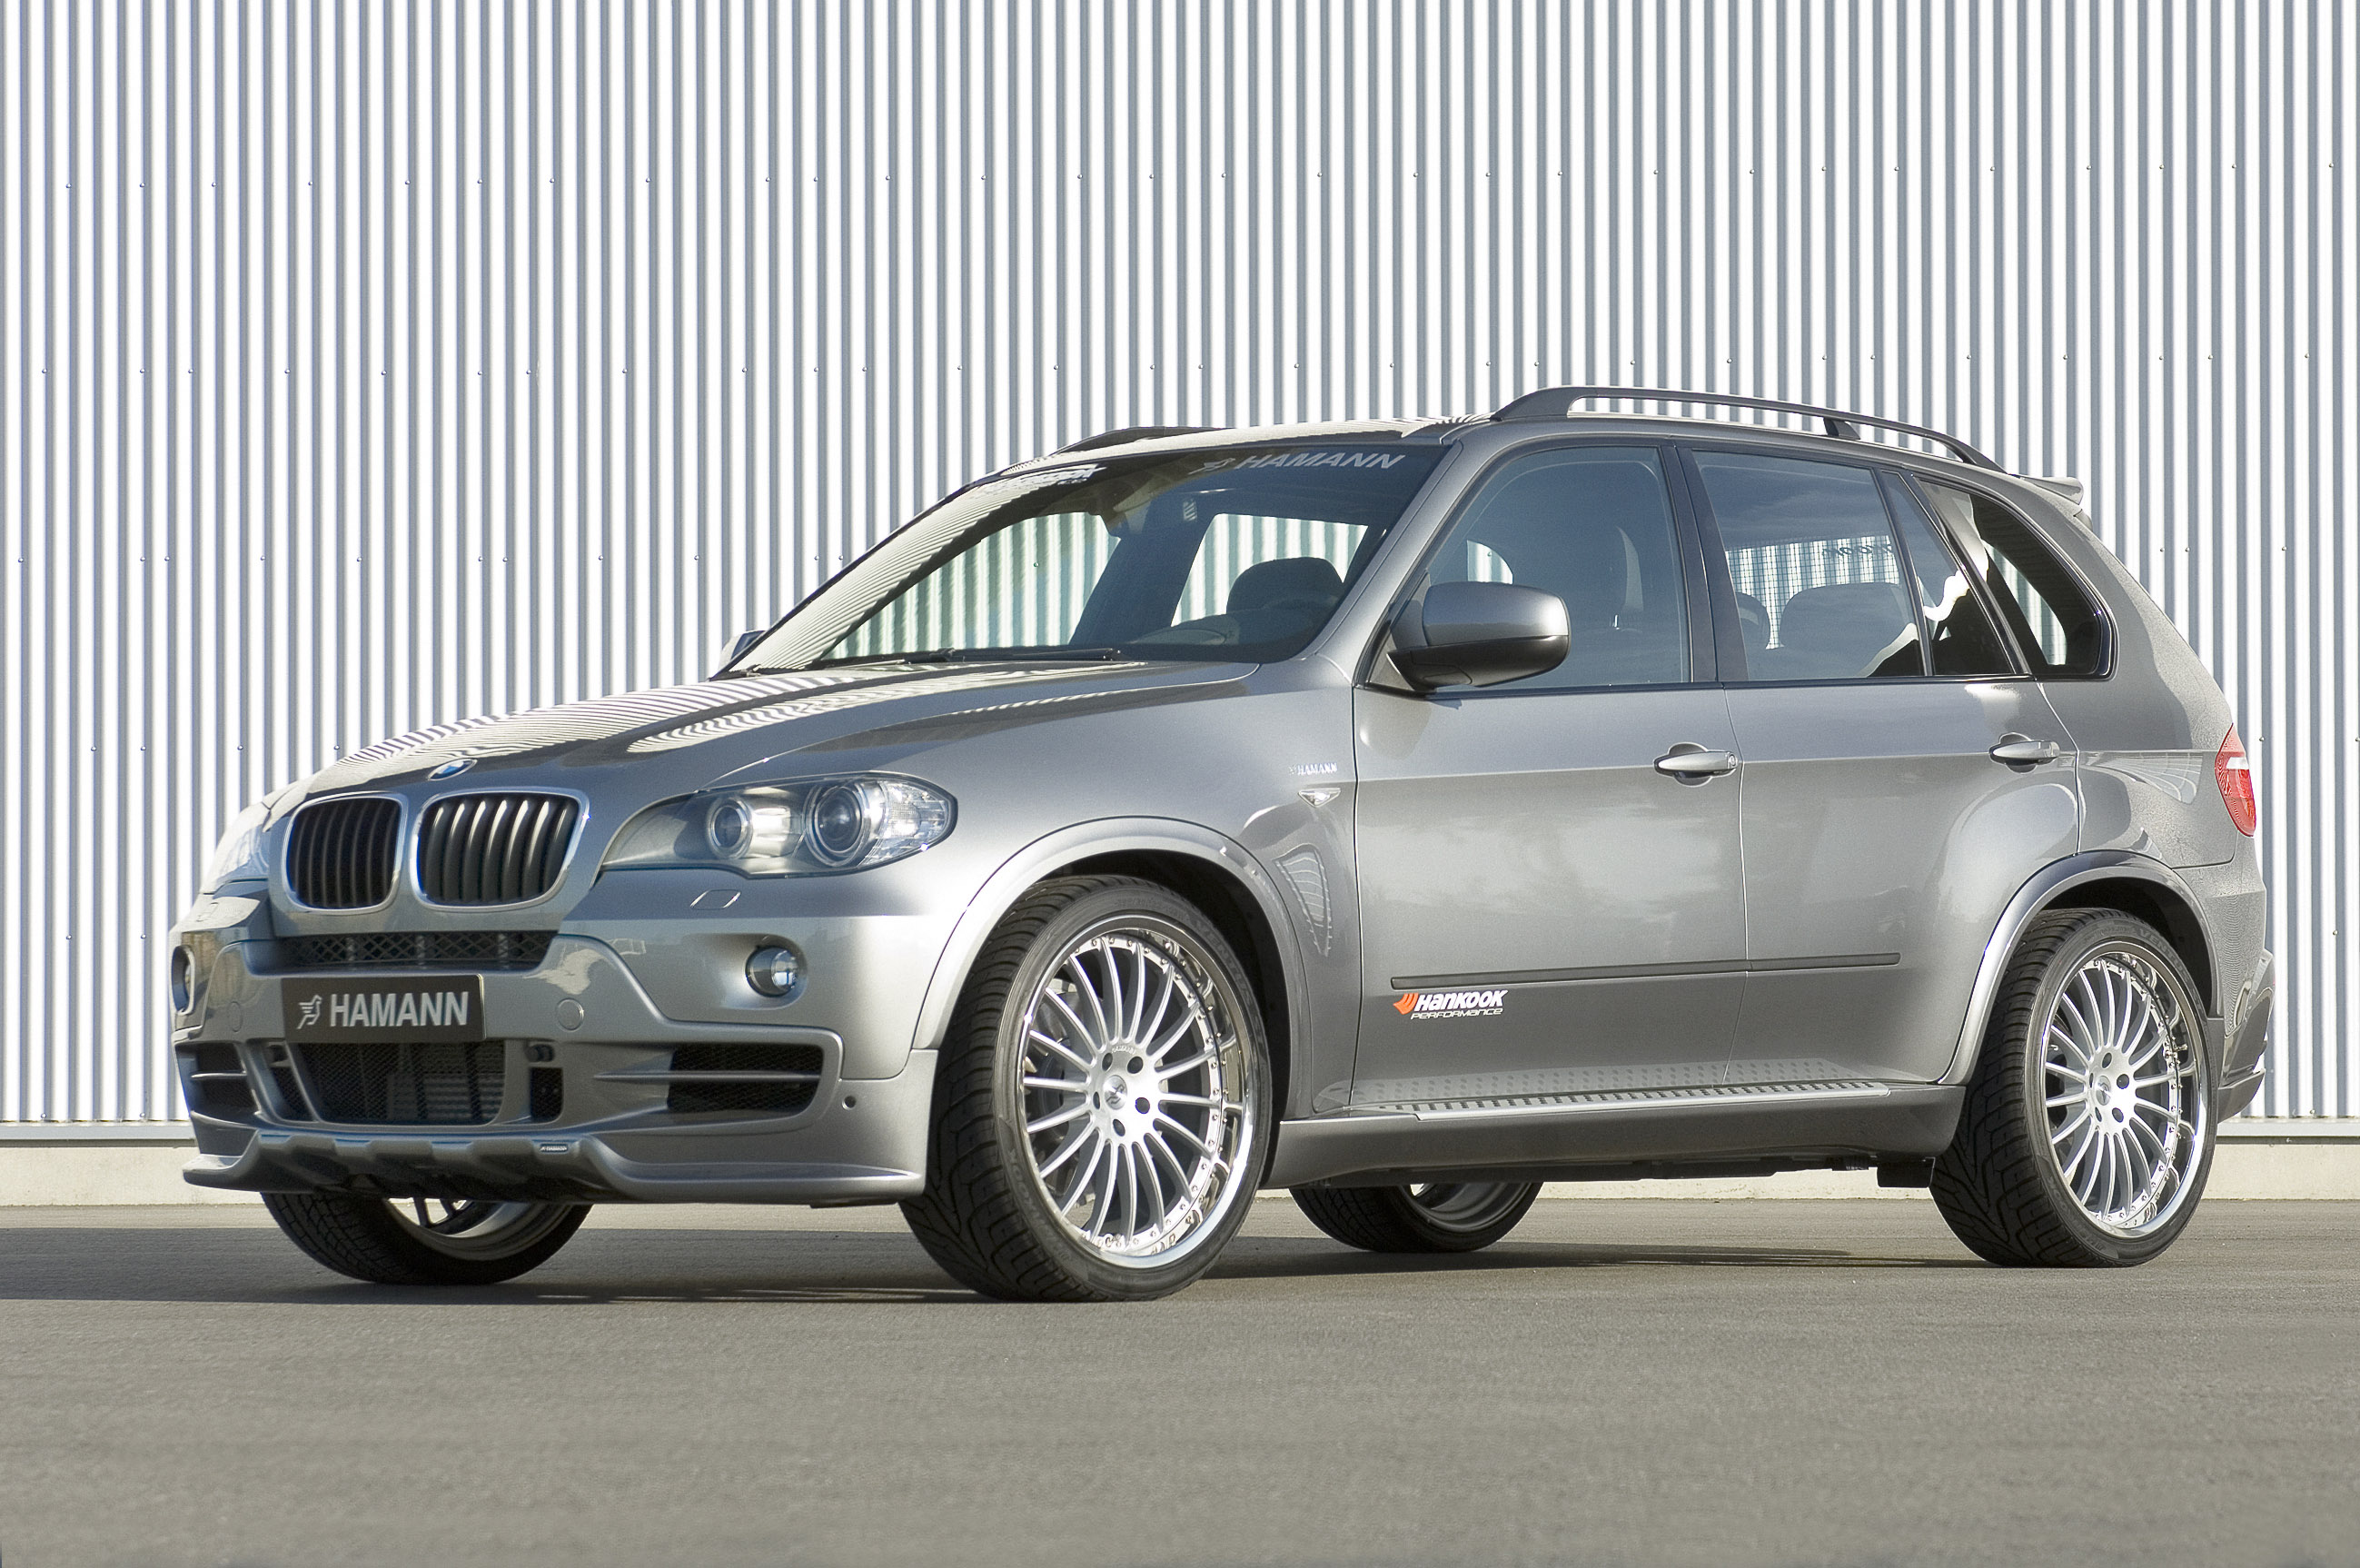 hamann bmw x5 e70. Black Bedroom Furniture Sets. Home Design Ideas